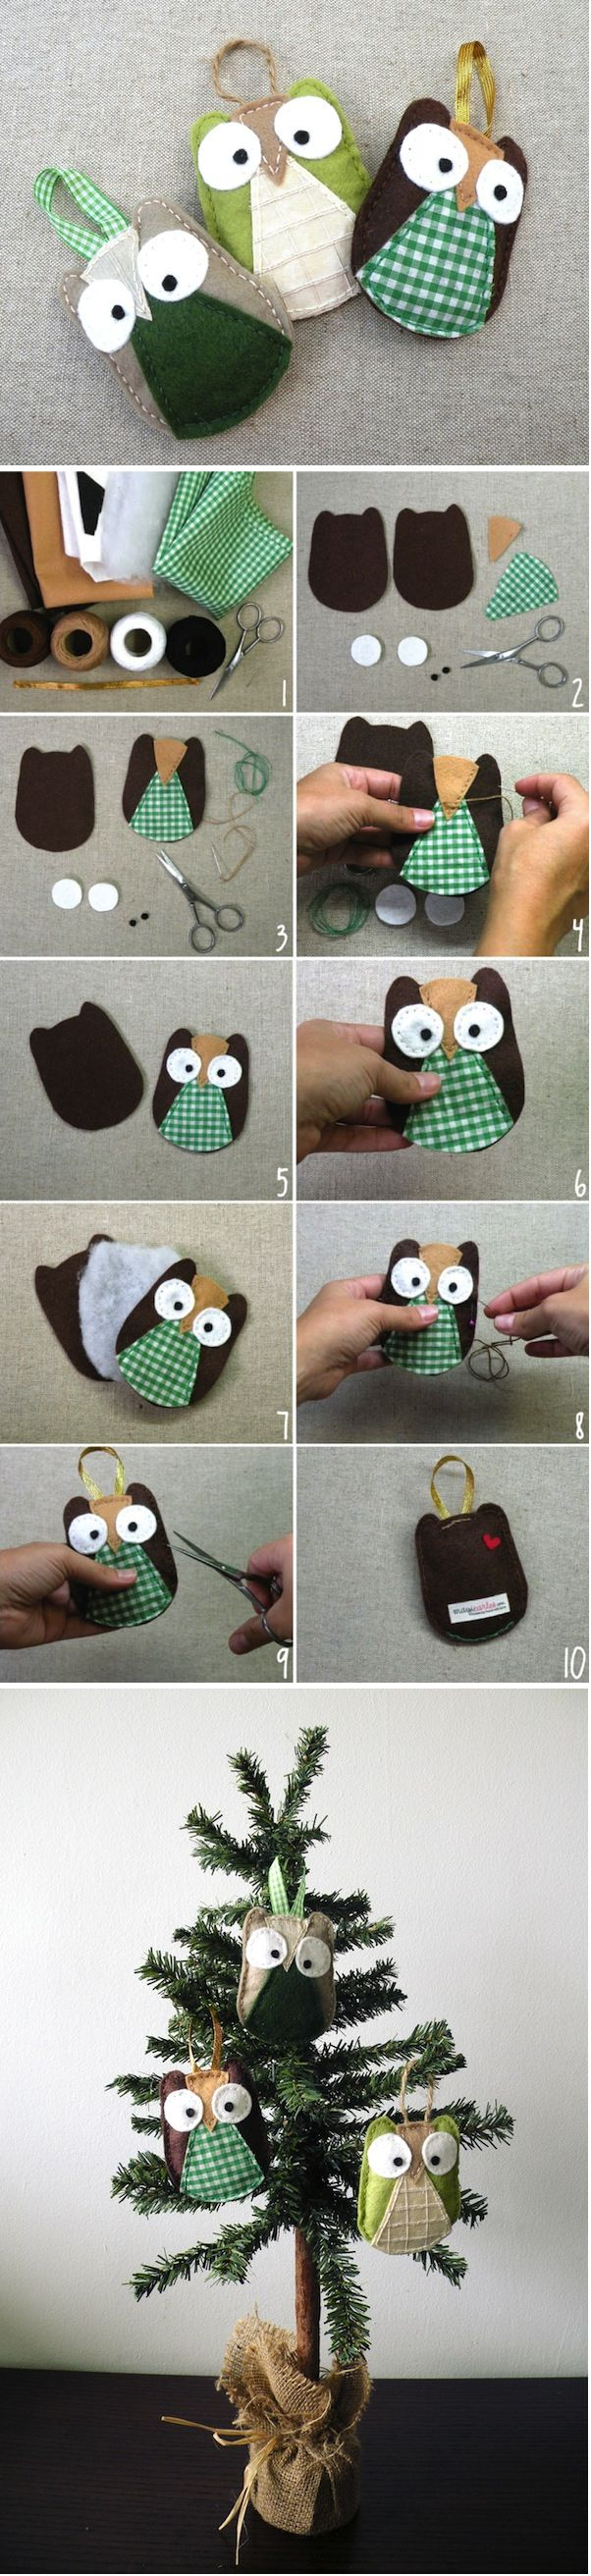 DIY Adorable Owl Ornament